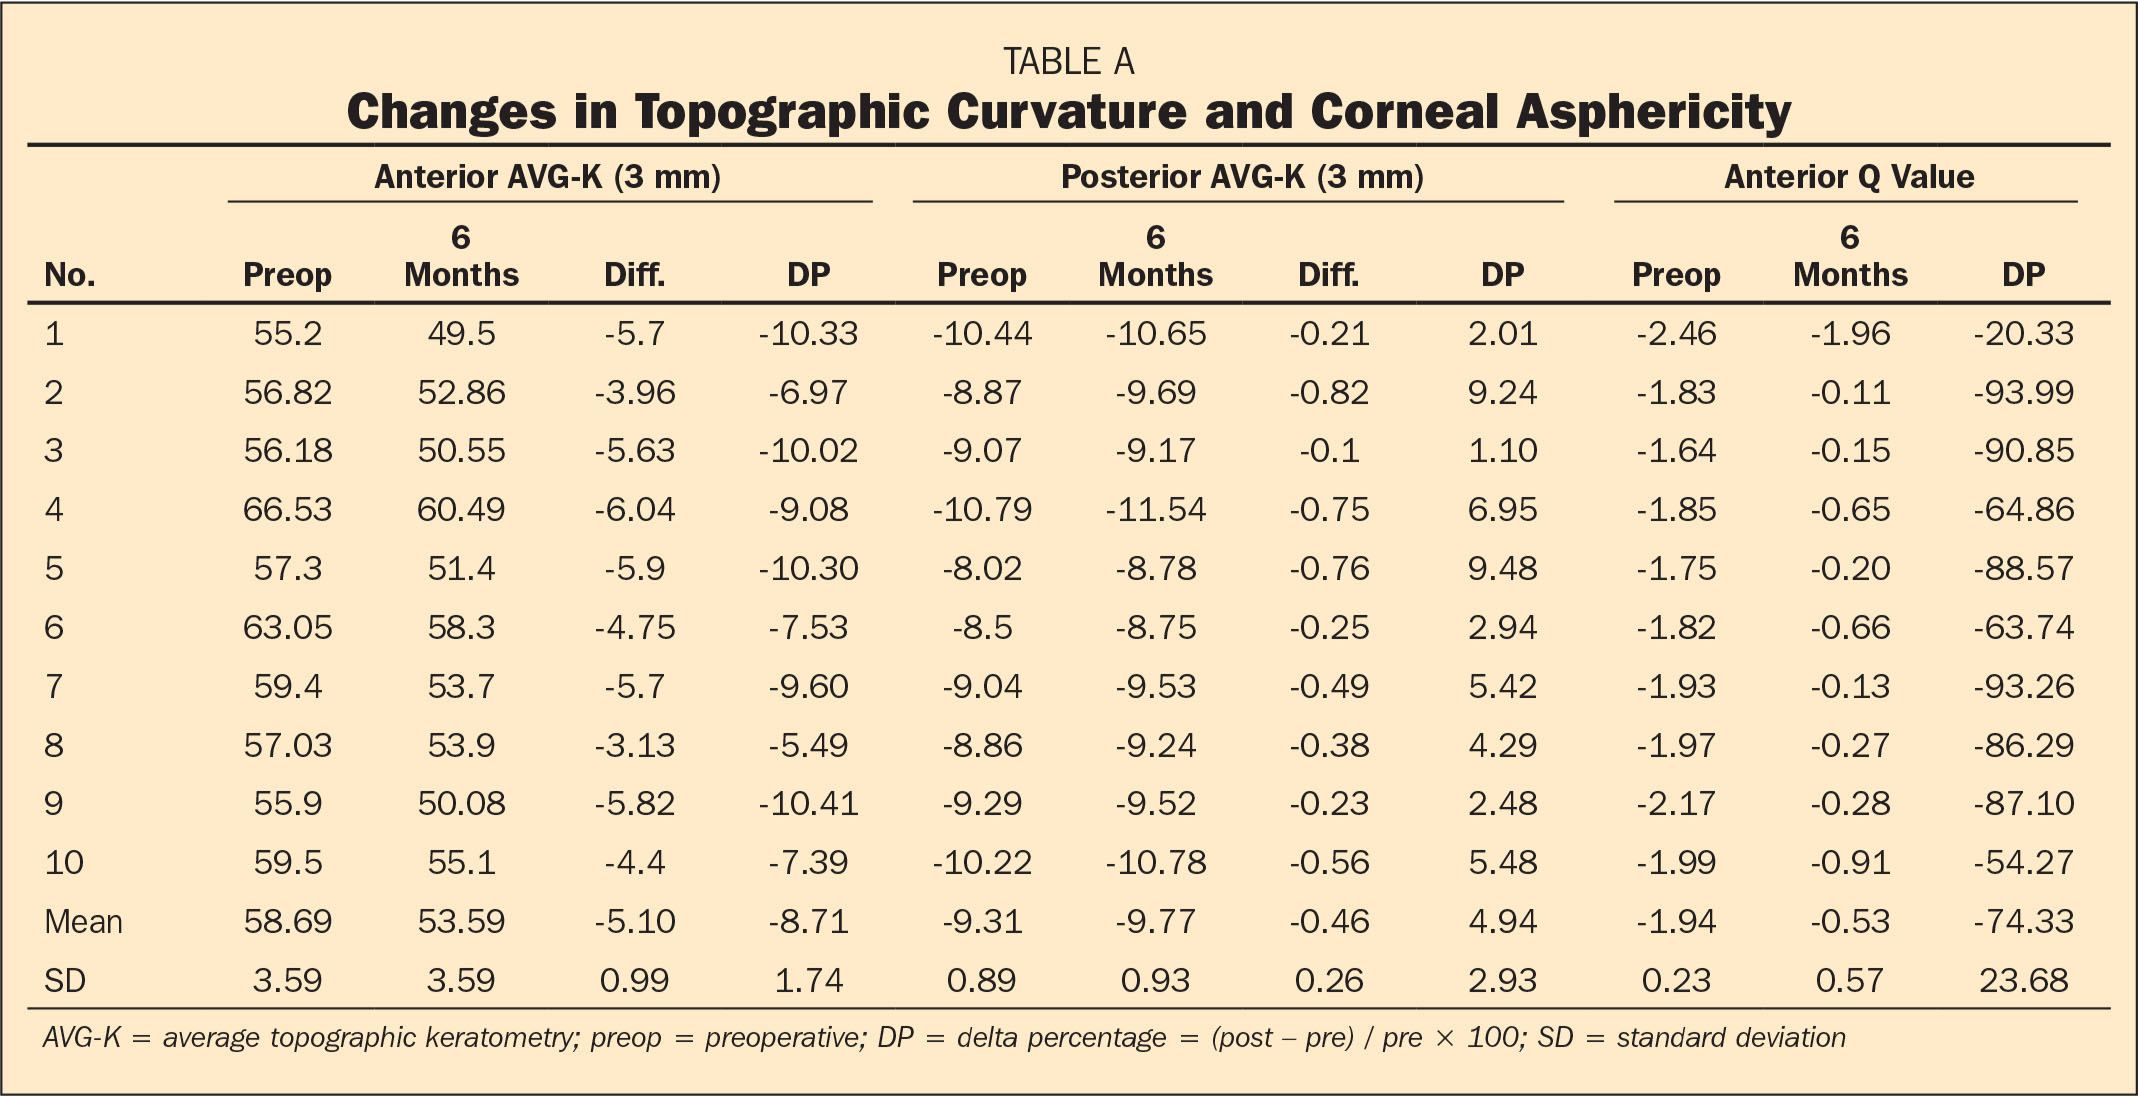 Changes in Topographic Curvature and Corneal Asphericity